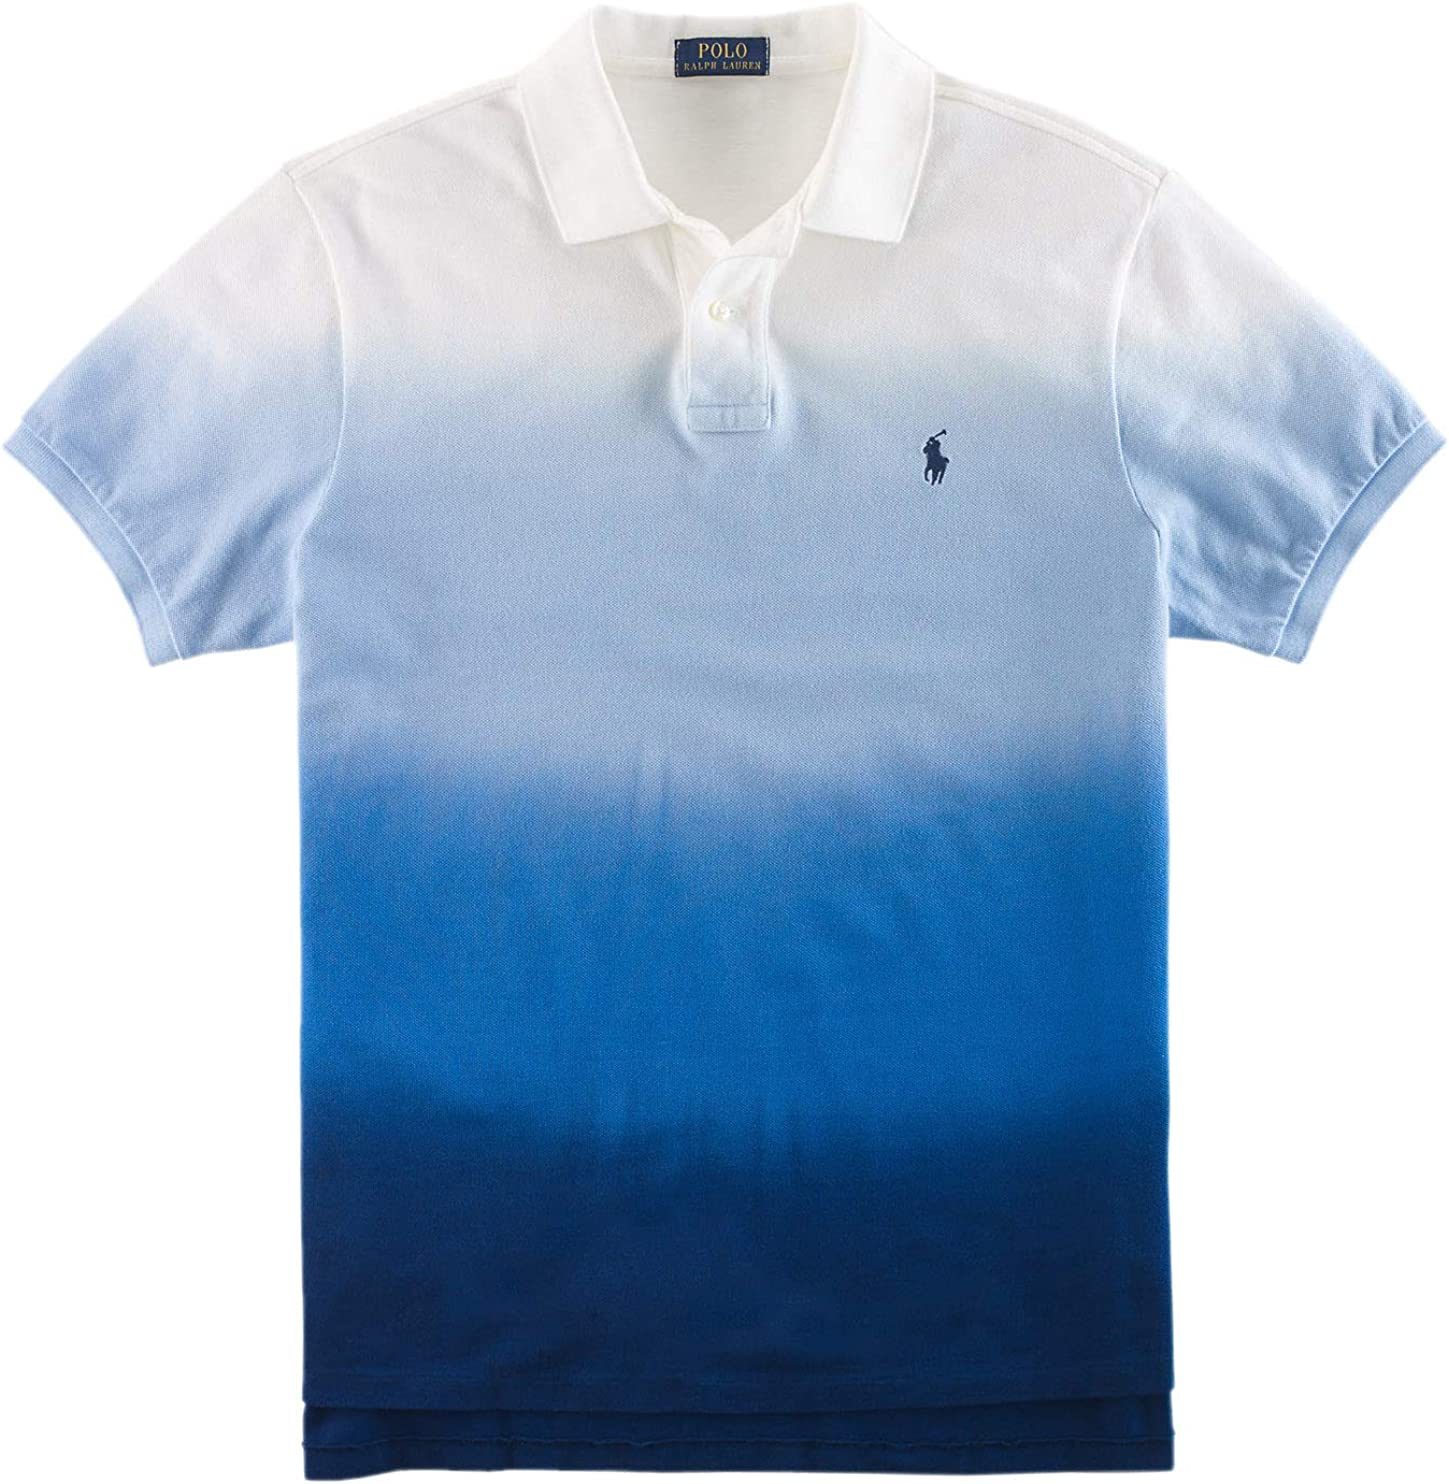 Polo RL Toddler Boy/'s Soft Color Pony Polo Shirt 2T-4T